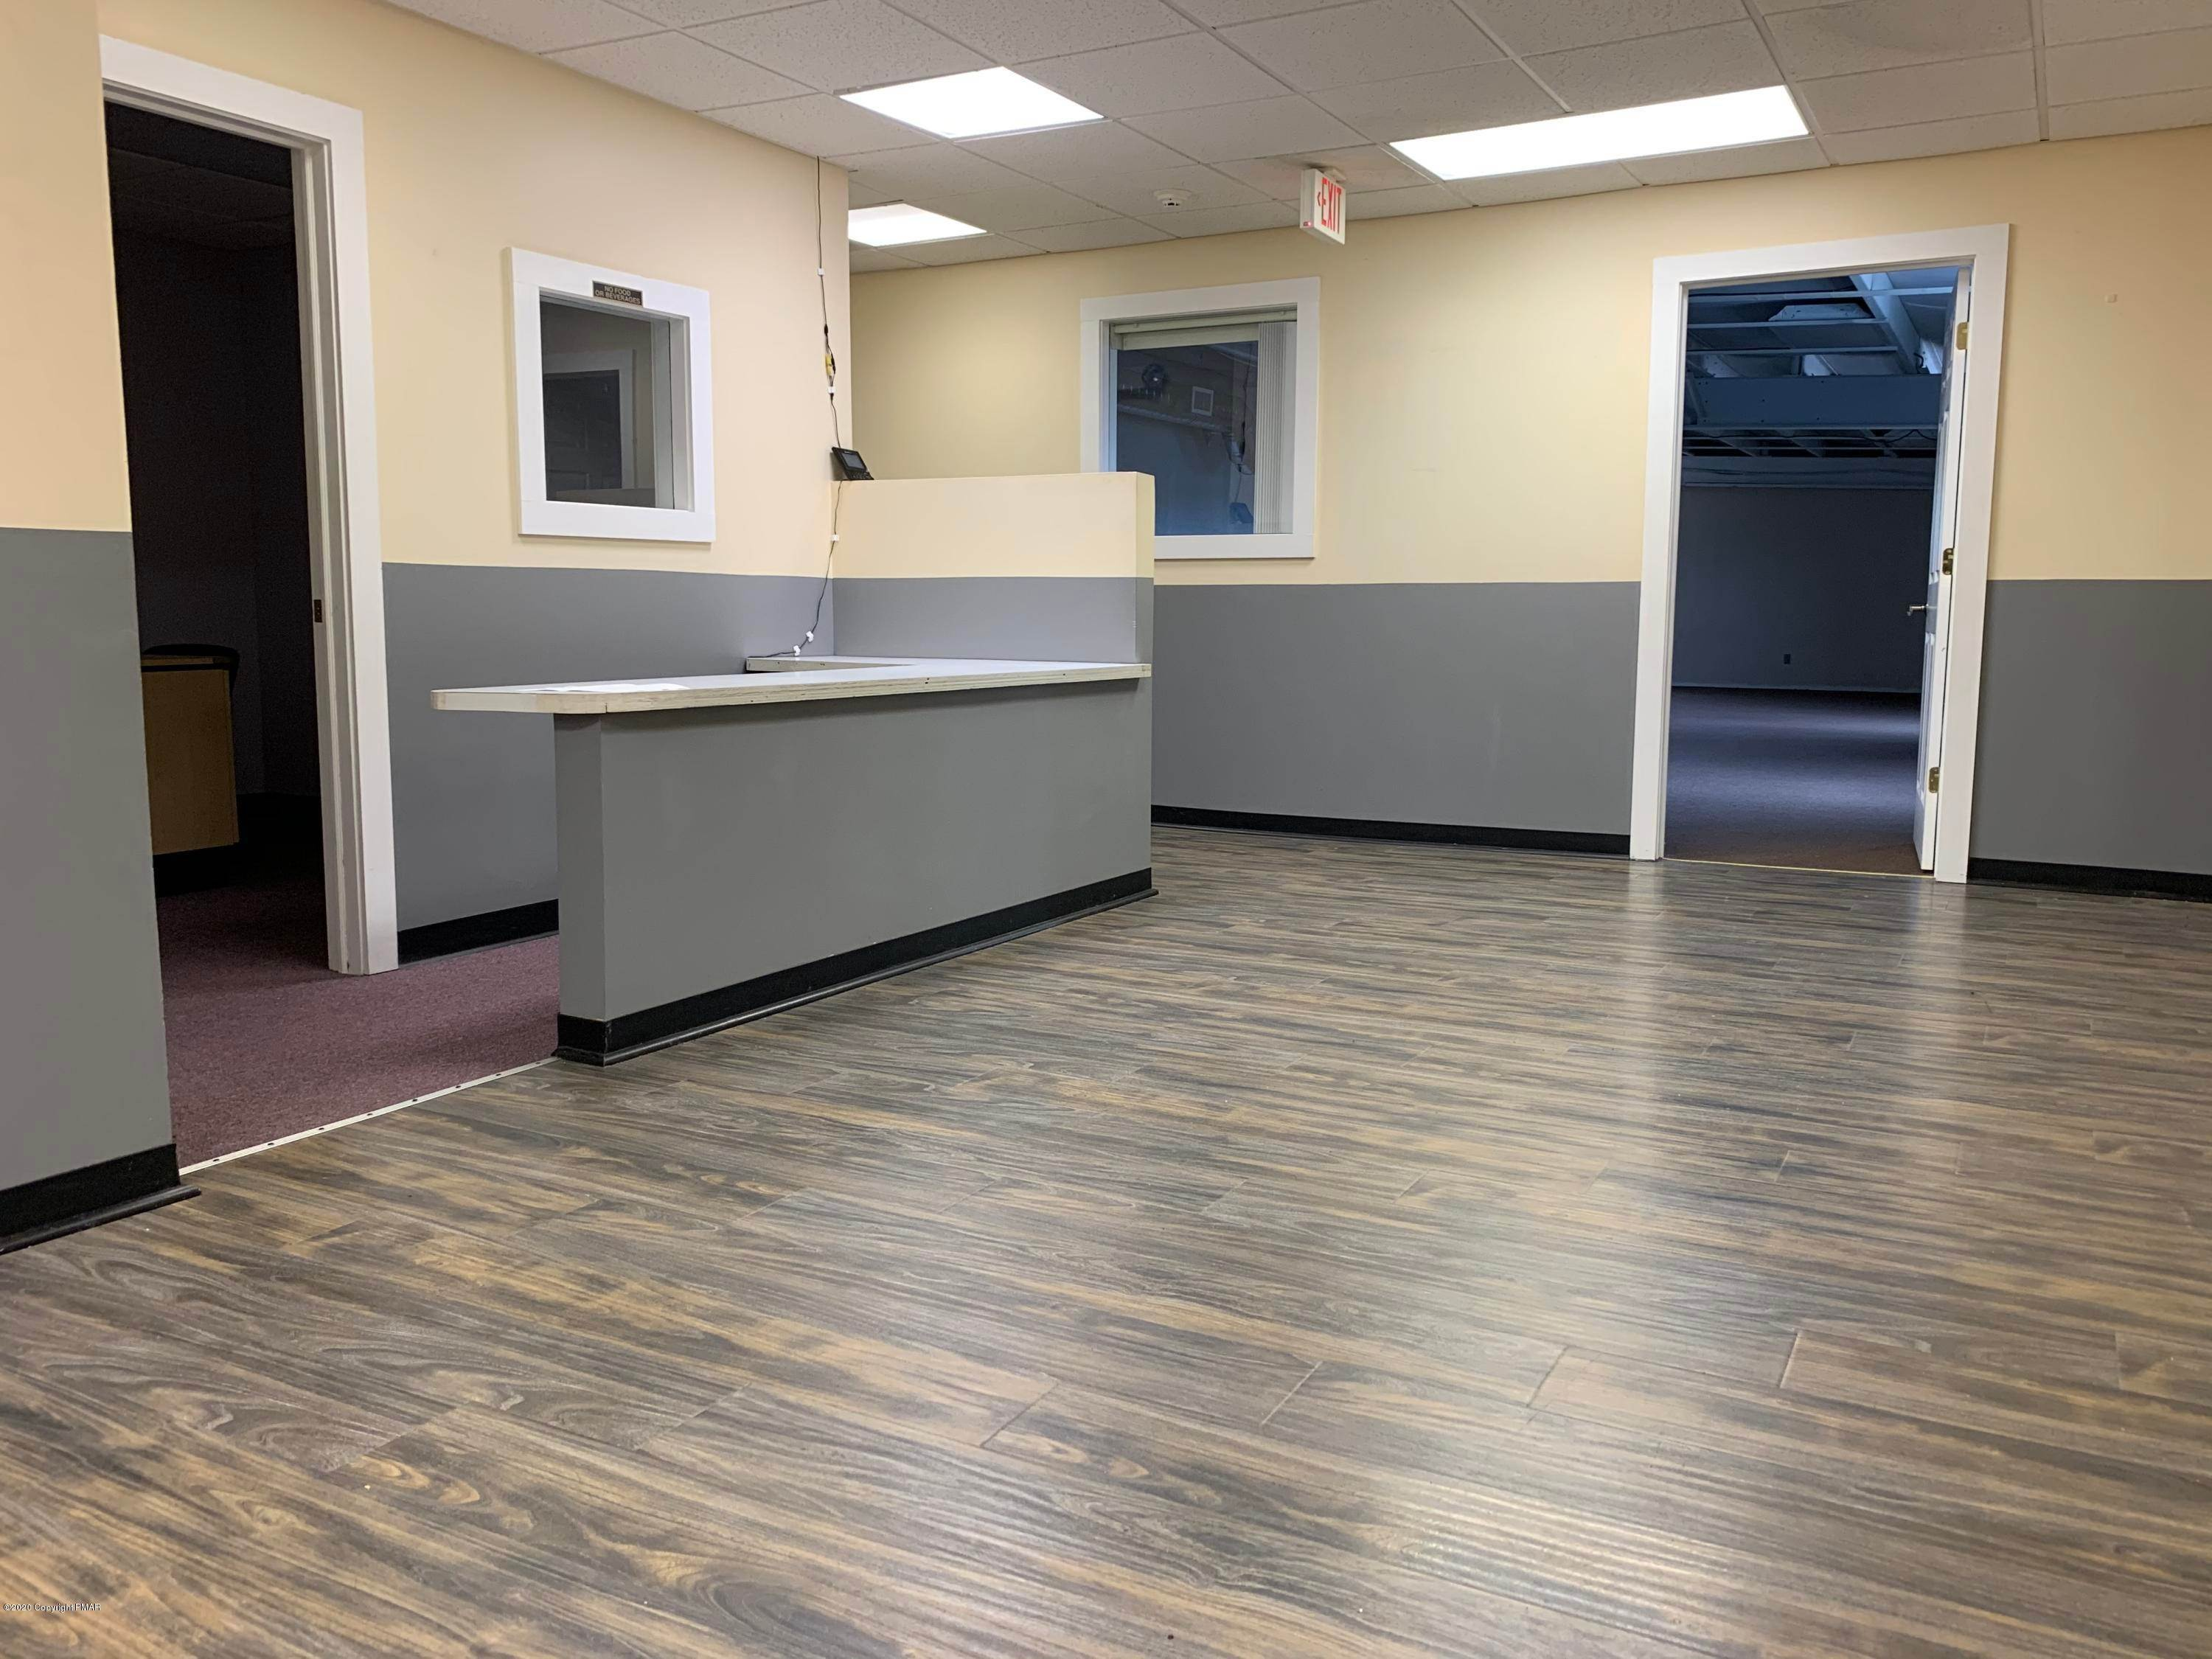 5. Commercial for Sale at 2936 Route 611, School-1 Tannersville, Pennsylvania 18372 United States